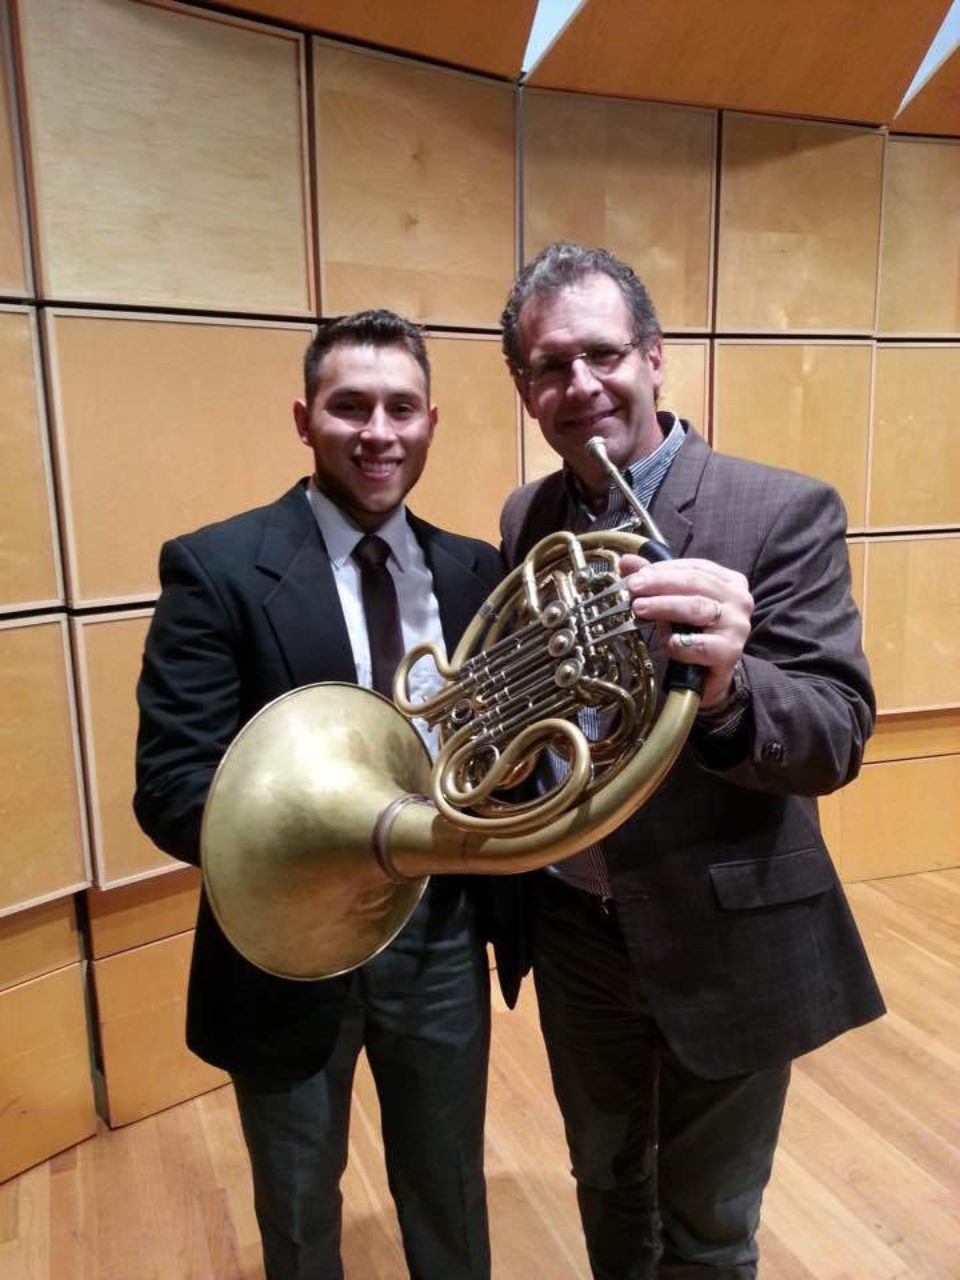 Valverde and Miller holding a French horn